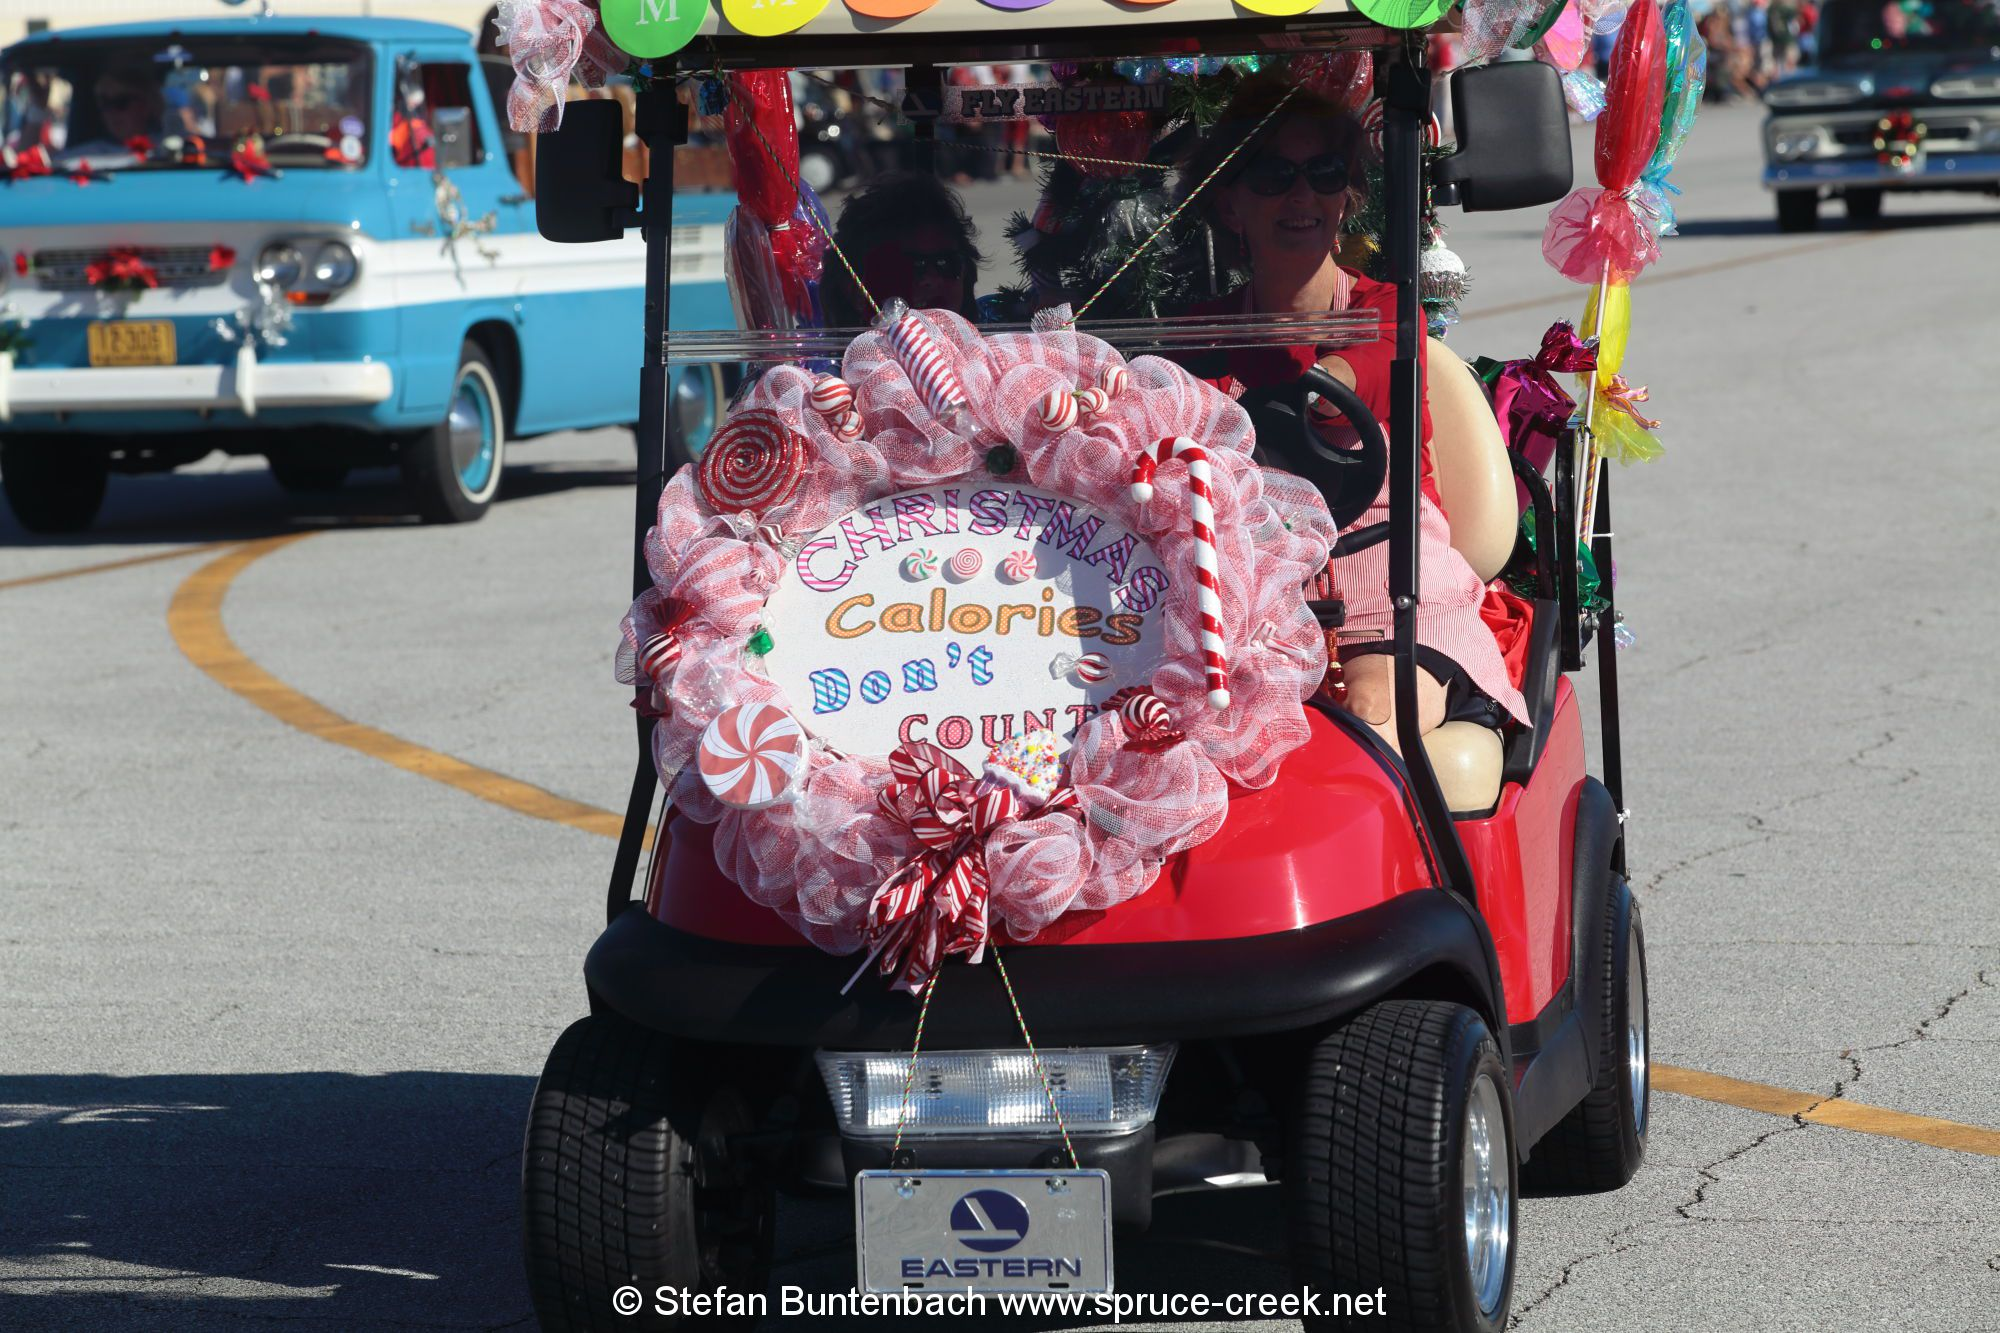 Spruce-Creek-Toyparade-2015- IMG_1524